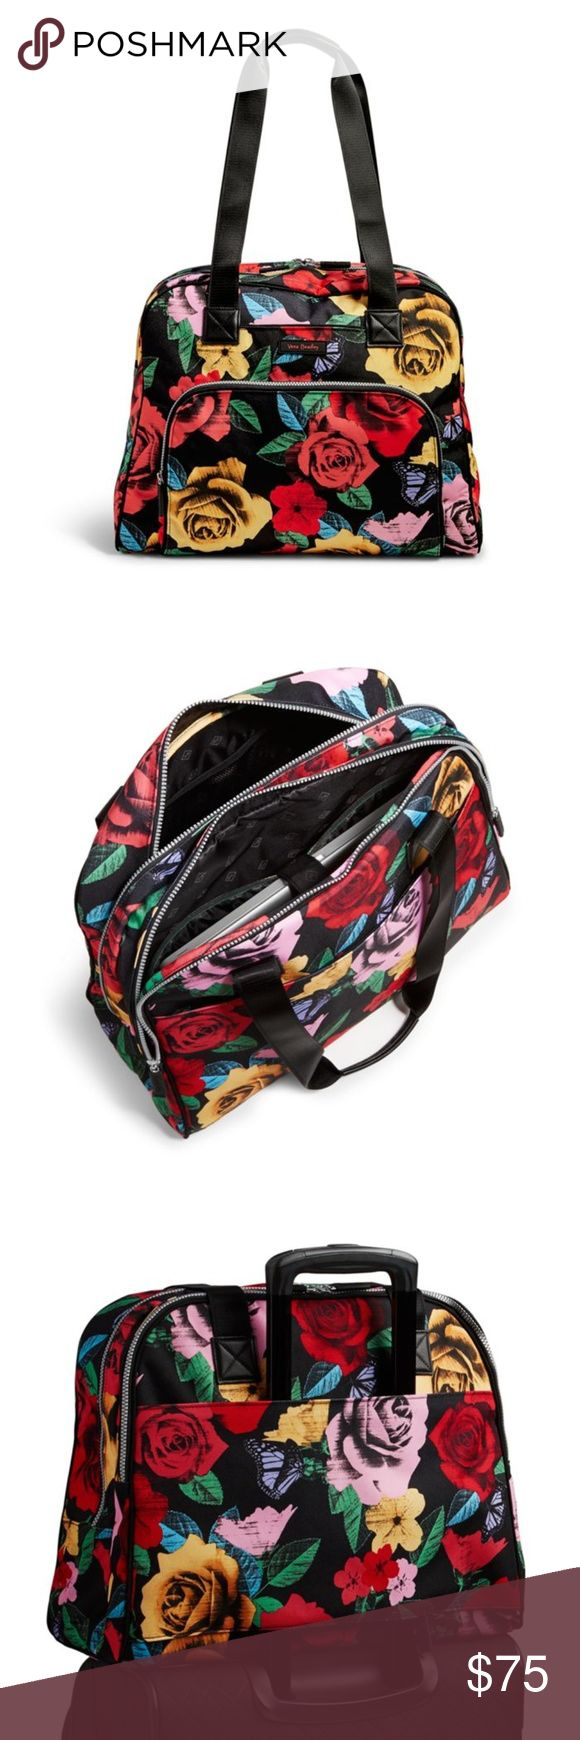 Vera Bradley Go Anywhere Carry-On in Havana Dots This lightweight, colorful, carry-on luggage piece includes lots of pockets for organizing and a laptop compartment. Send us a postcard from the road! Lighten Up fabrication is lightweight, durable and water-repellent. Exterior features front slip pocket and a rear pocket that unzips to form a trolley sleeve. Interior features two slip pockets, five elastic mesh slip pockets, one zip pocket and a laptop compartment. Also includes a shoe bag…